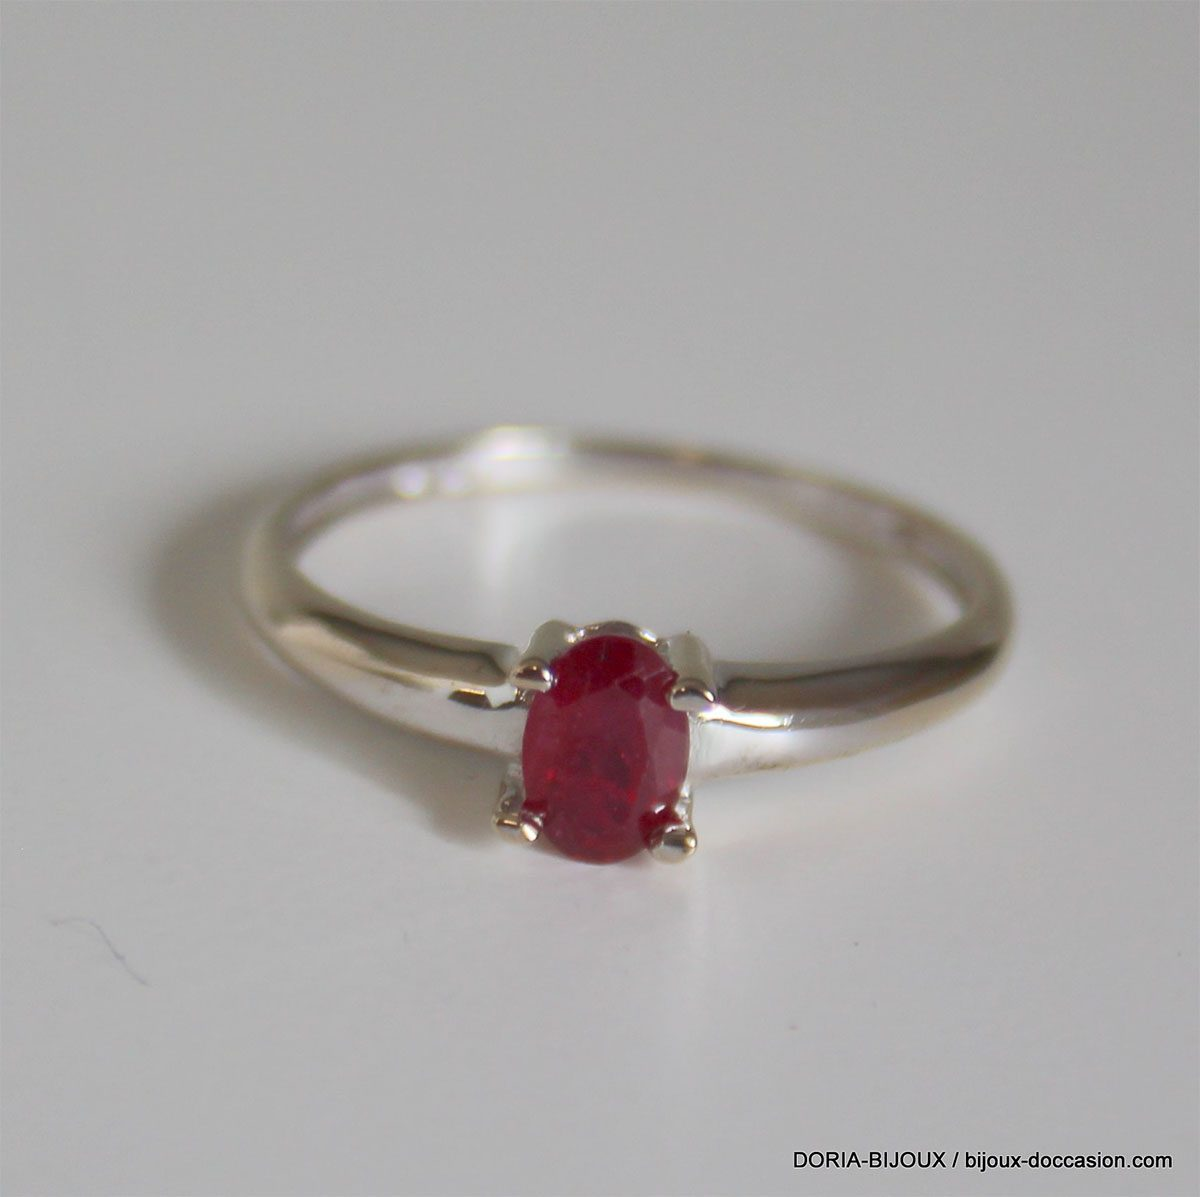 Bague Or Gris 18k 750 Rubis 1.7grs -55